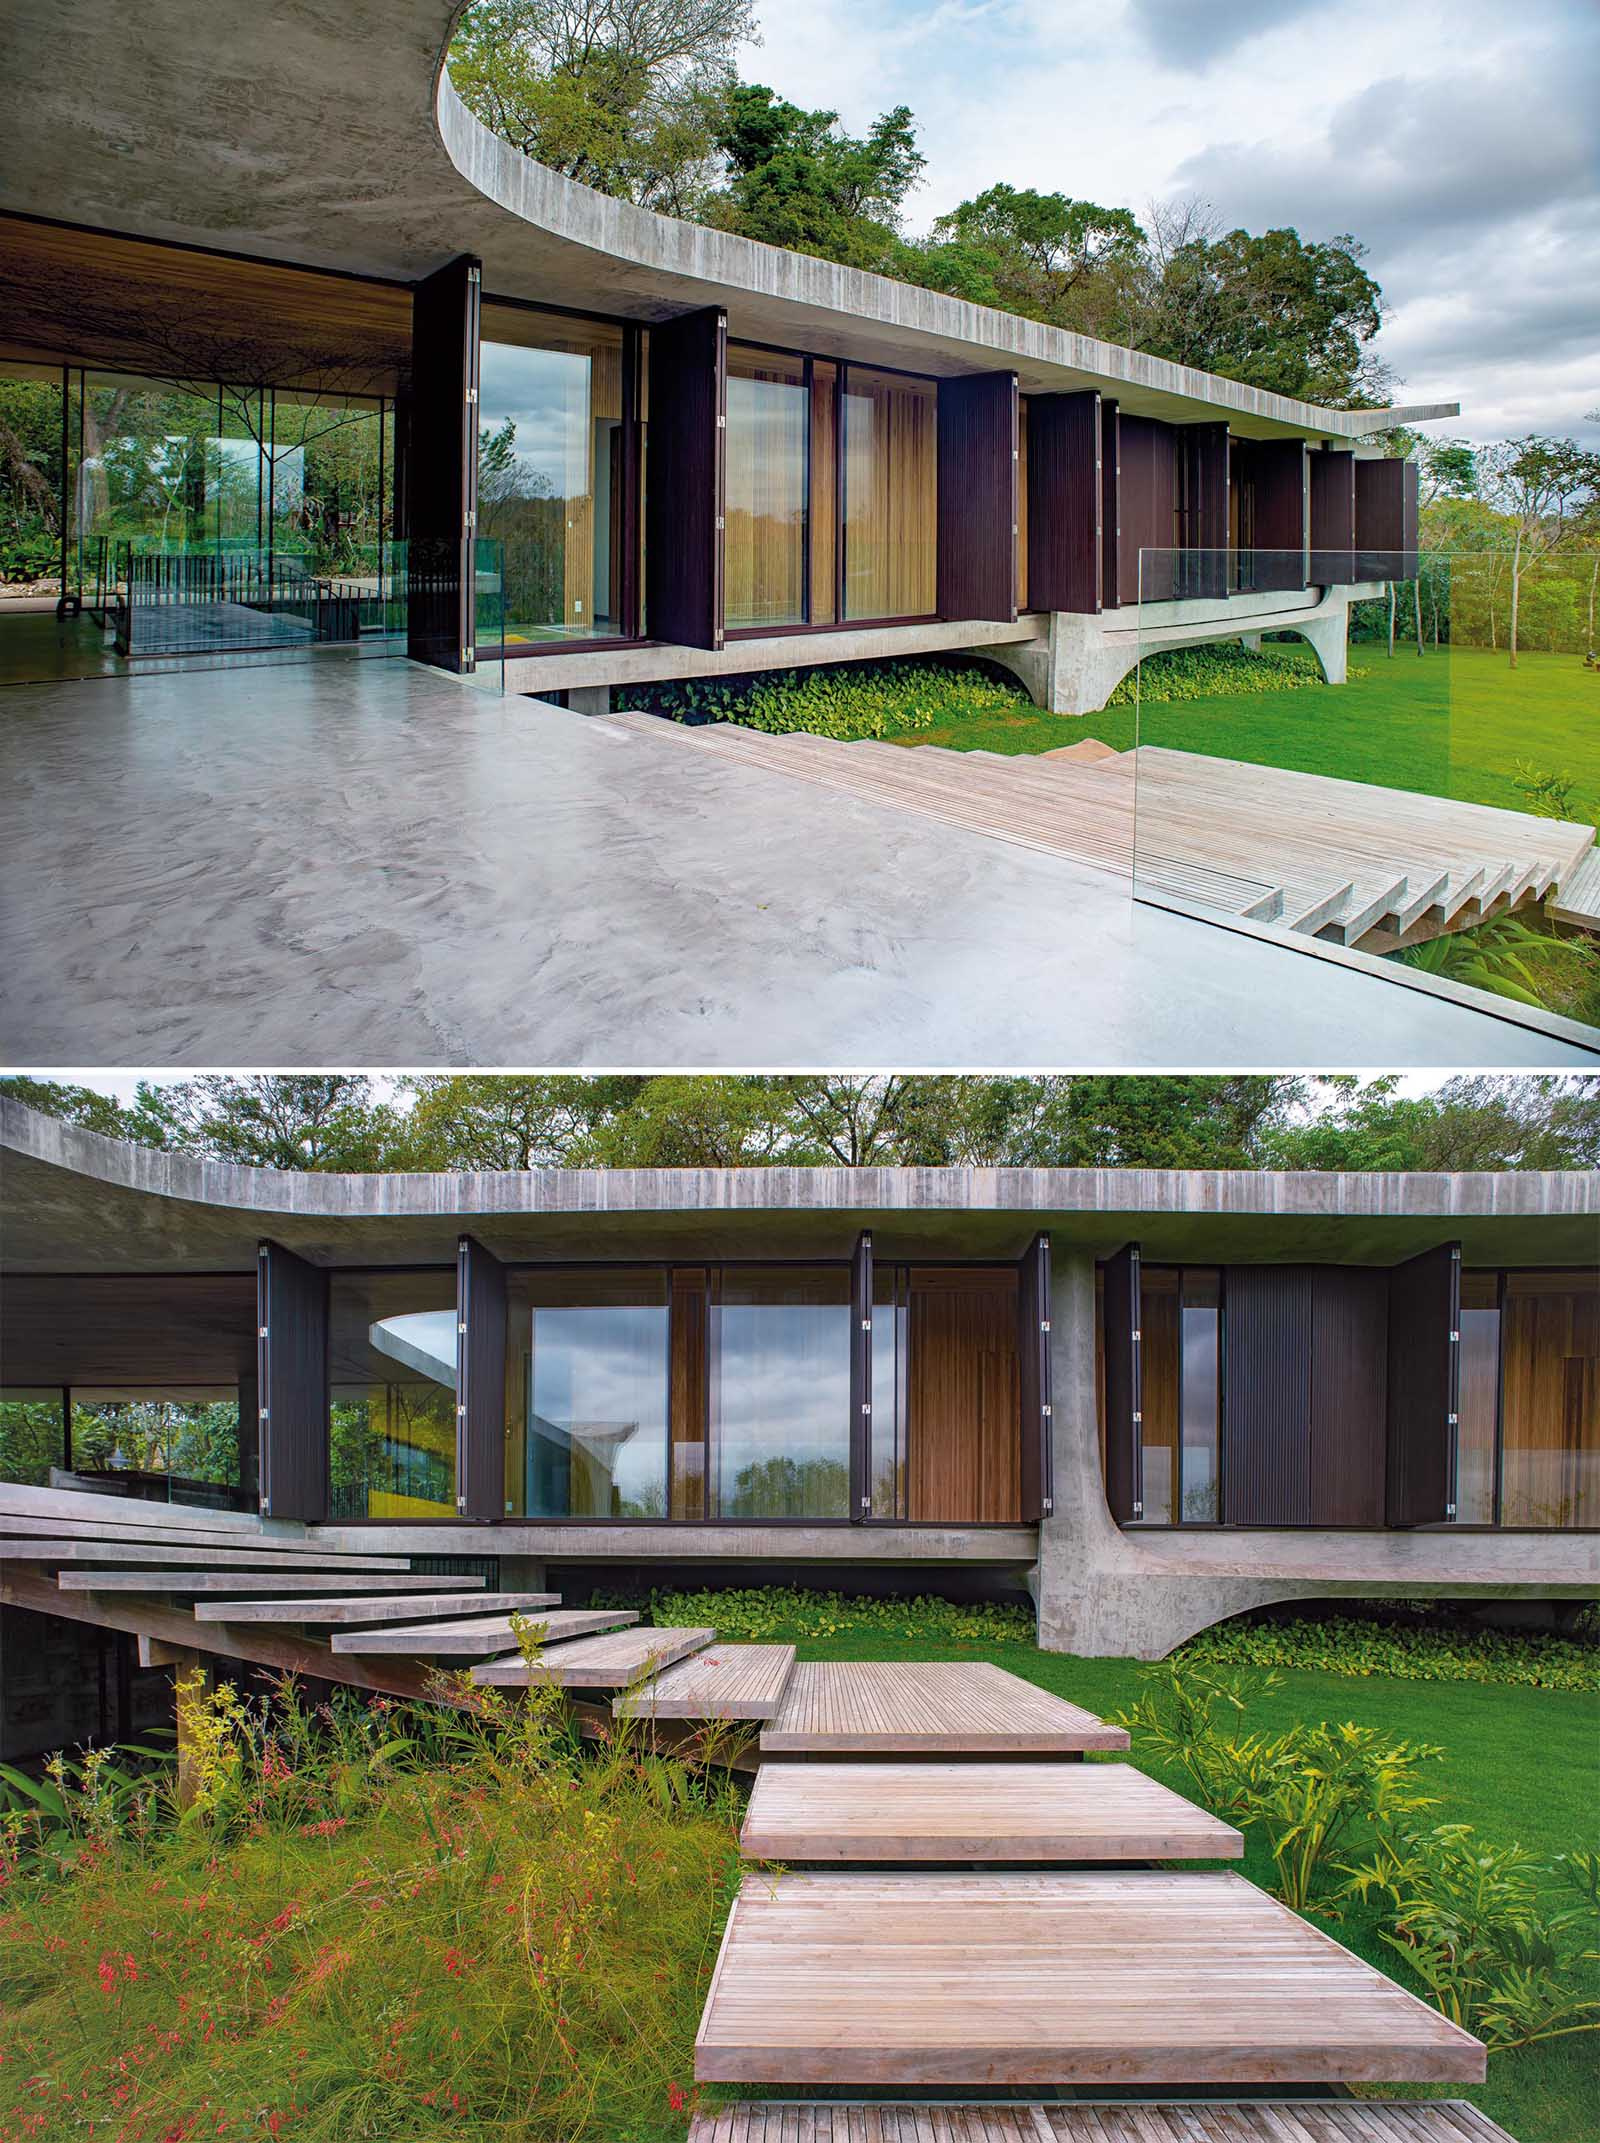 This modern concrete house has wood stairs that lead from the main living level down to the yard and swimming pool.